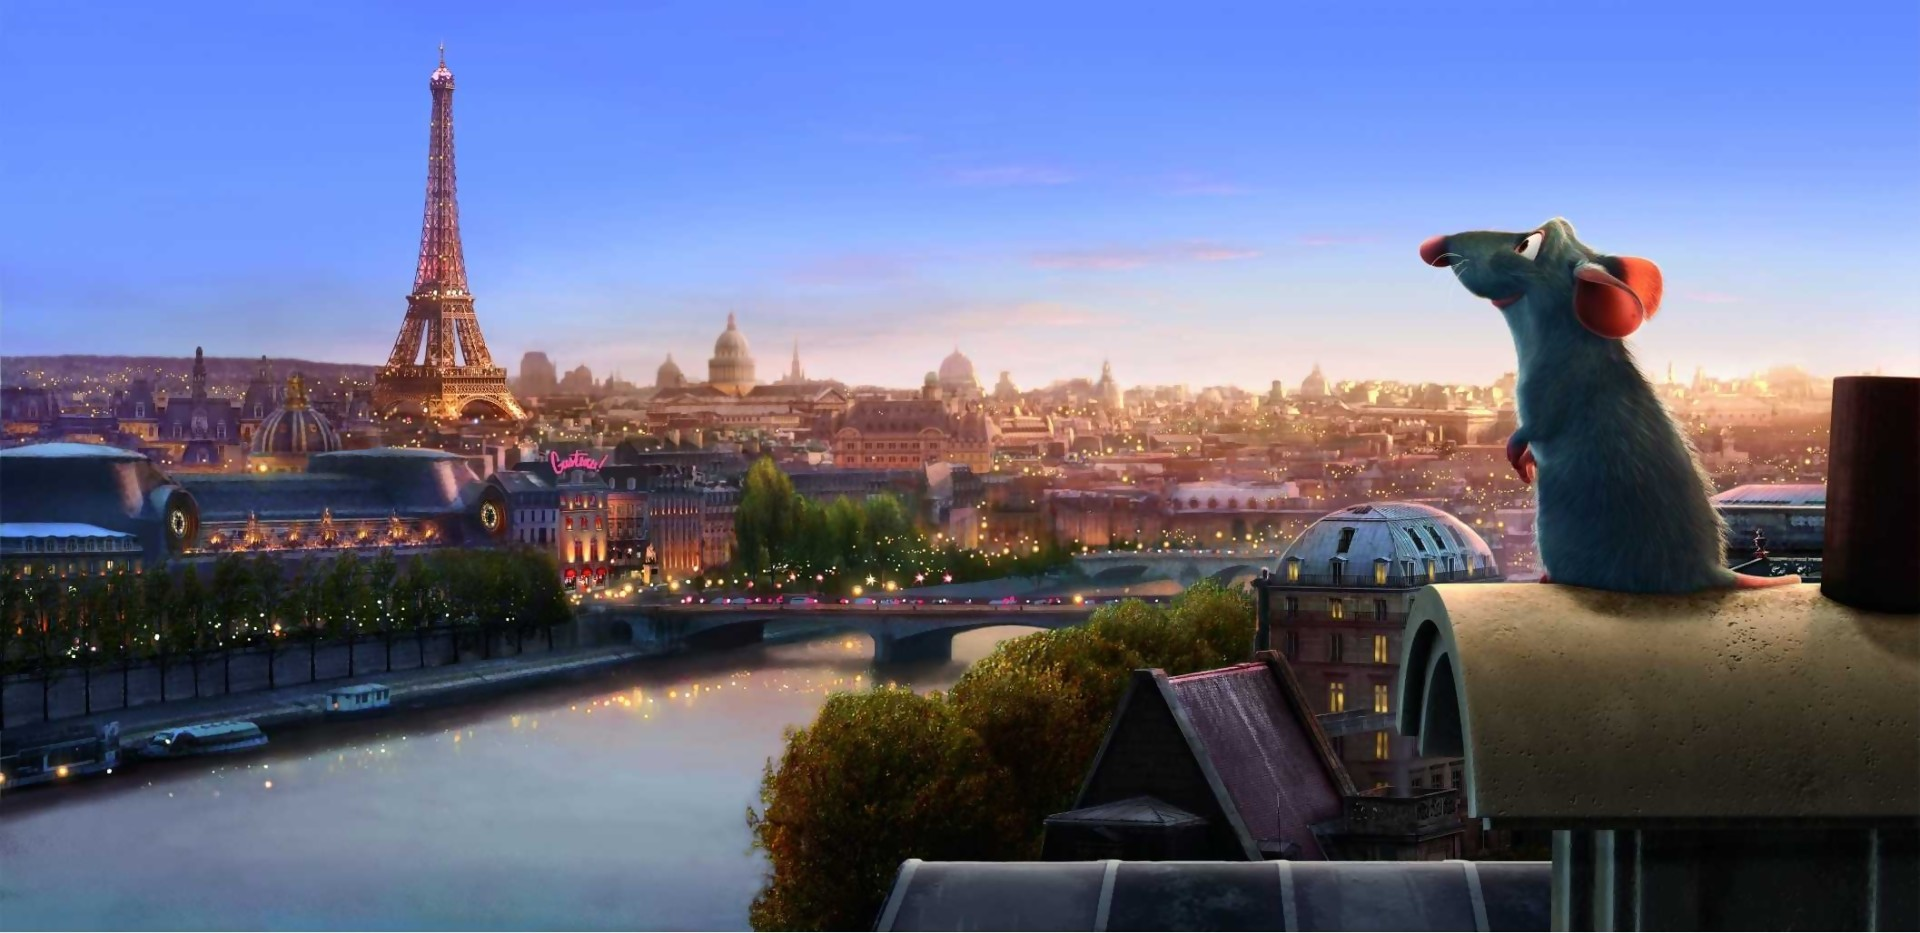 Source image: film Ratatouille de Disney